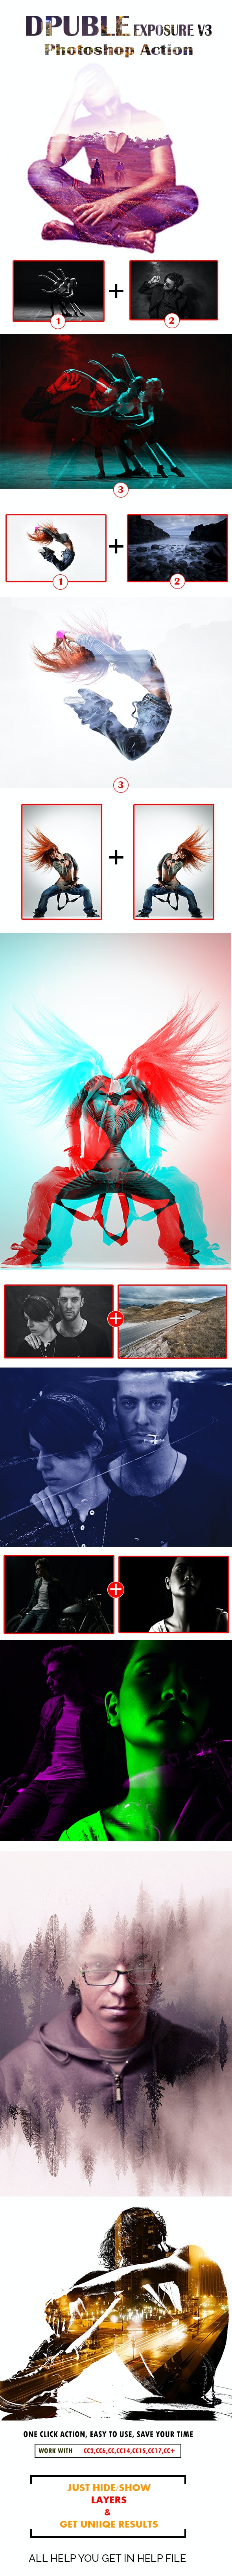 Double Exposure V3 Photoshop Action - Photo Effects Actions